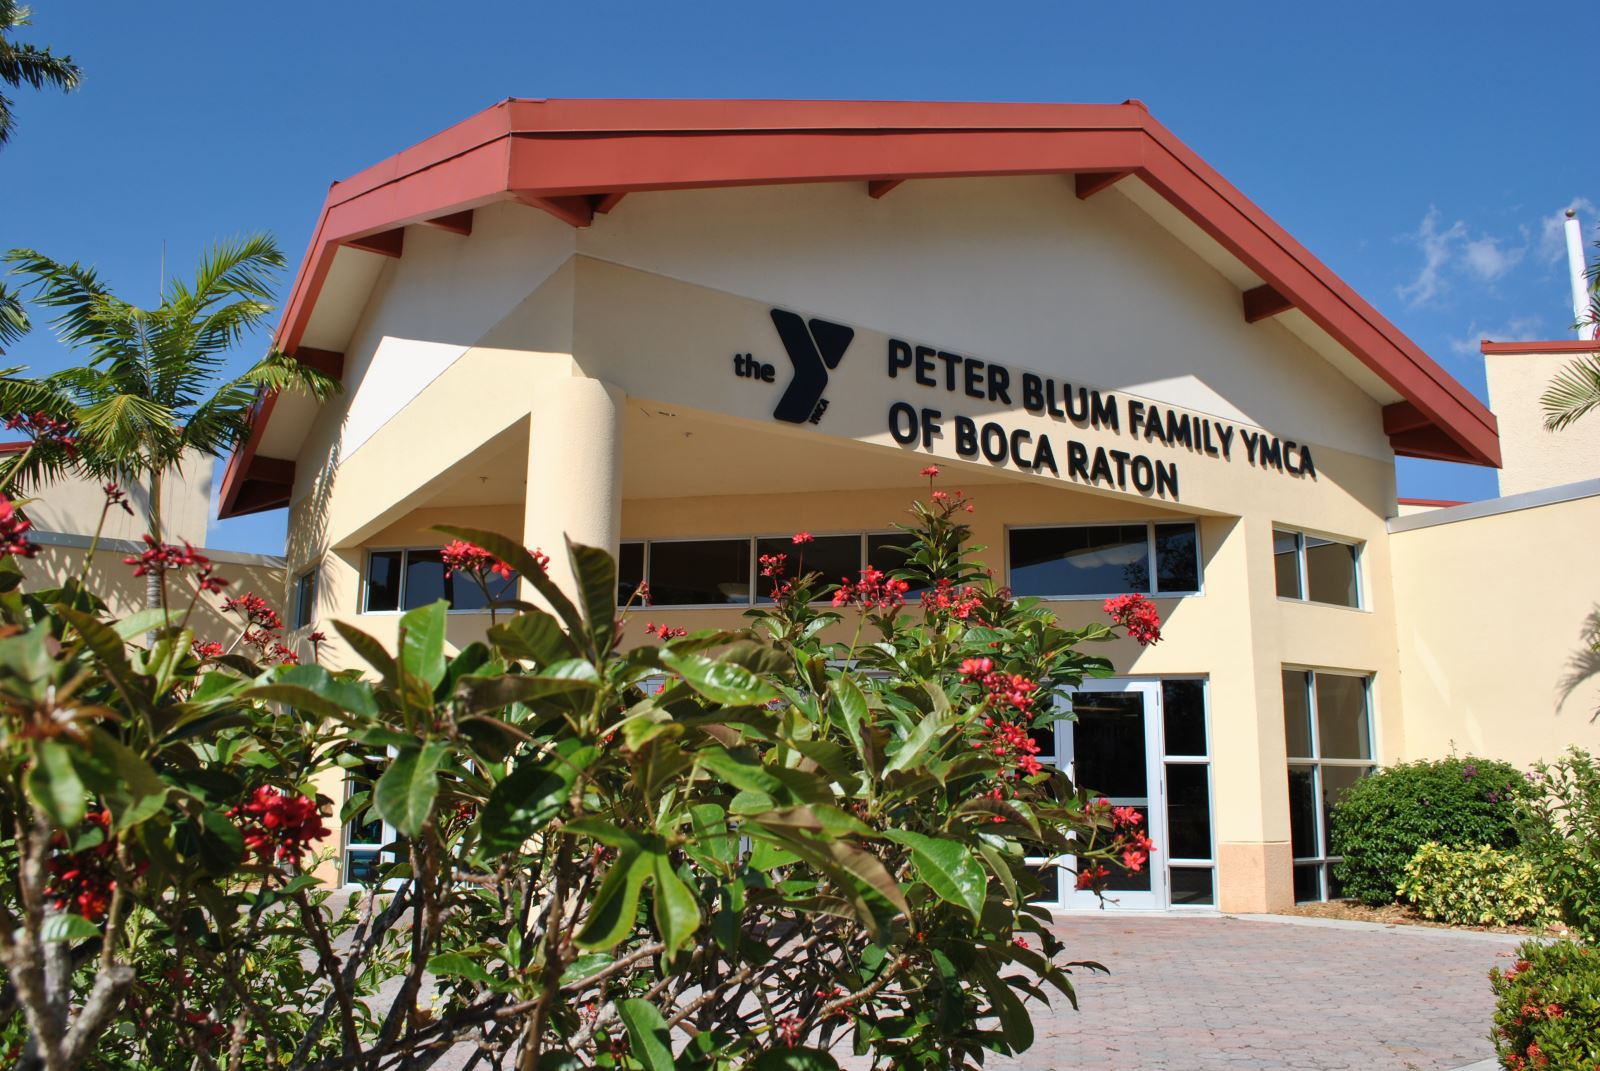 YMCA of Boca Raton Peter Blum Family Center